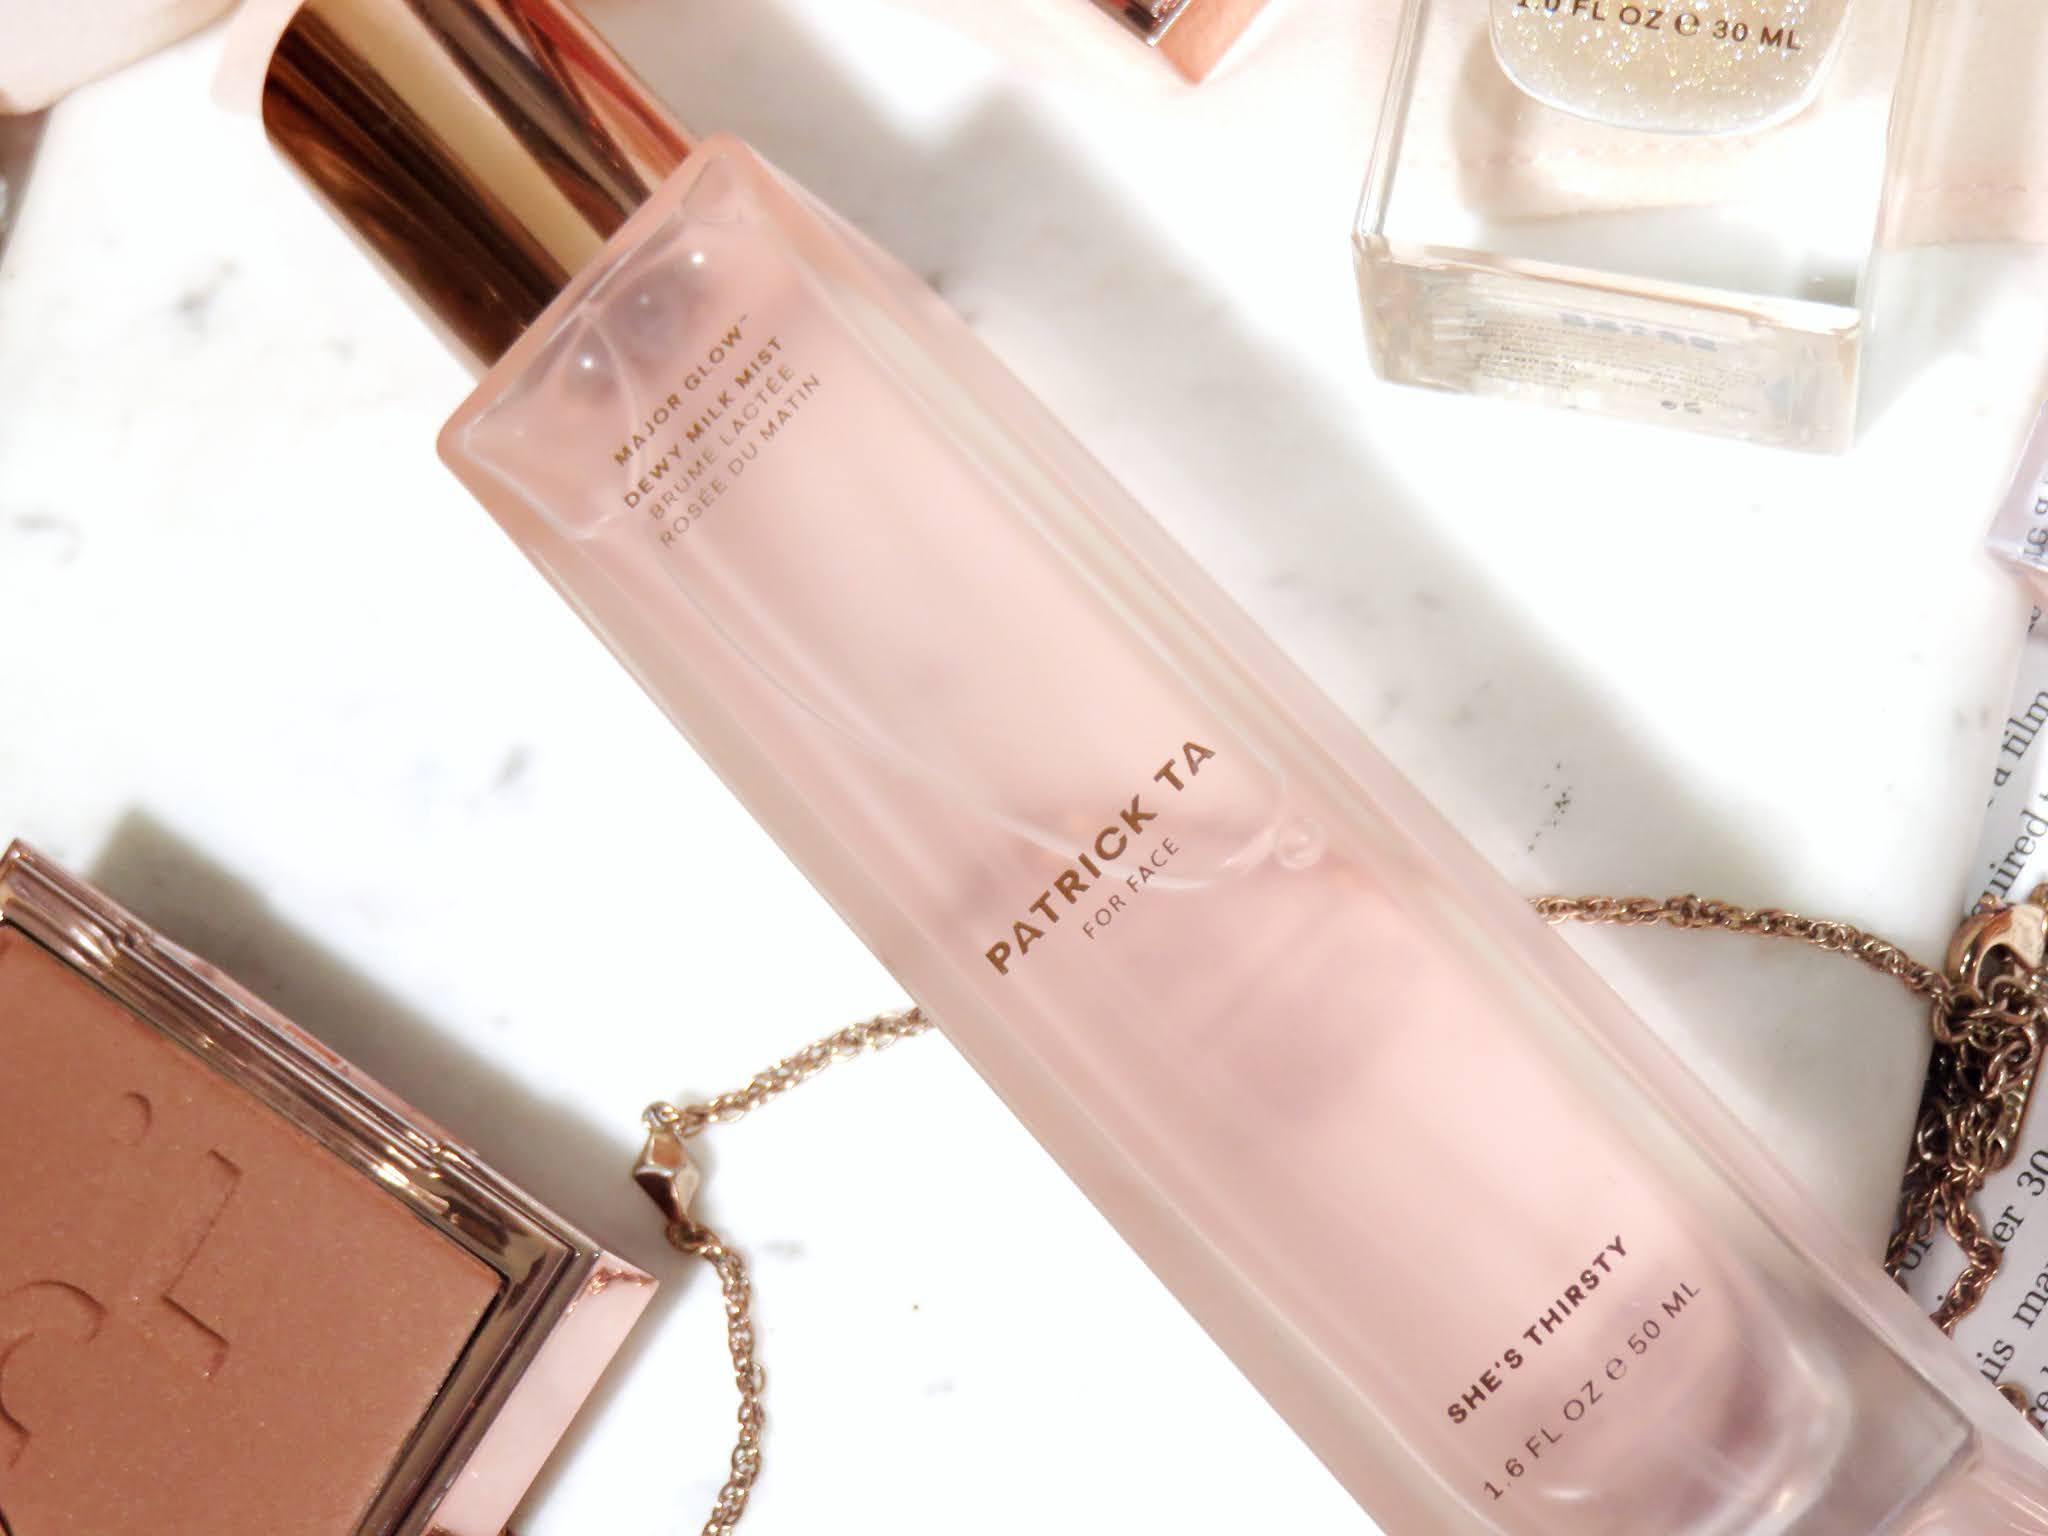 Patrick Ta Major Glow Dewy Milk Mist Review